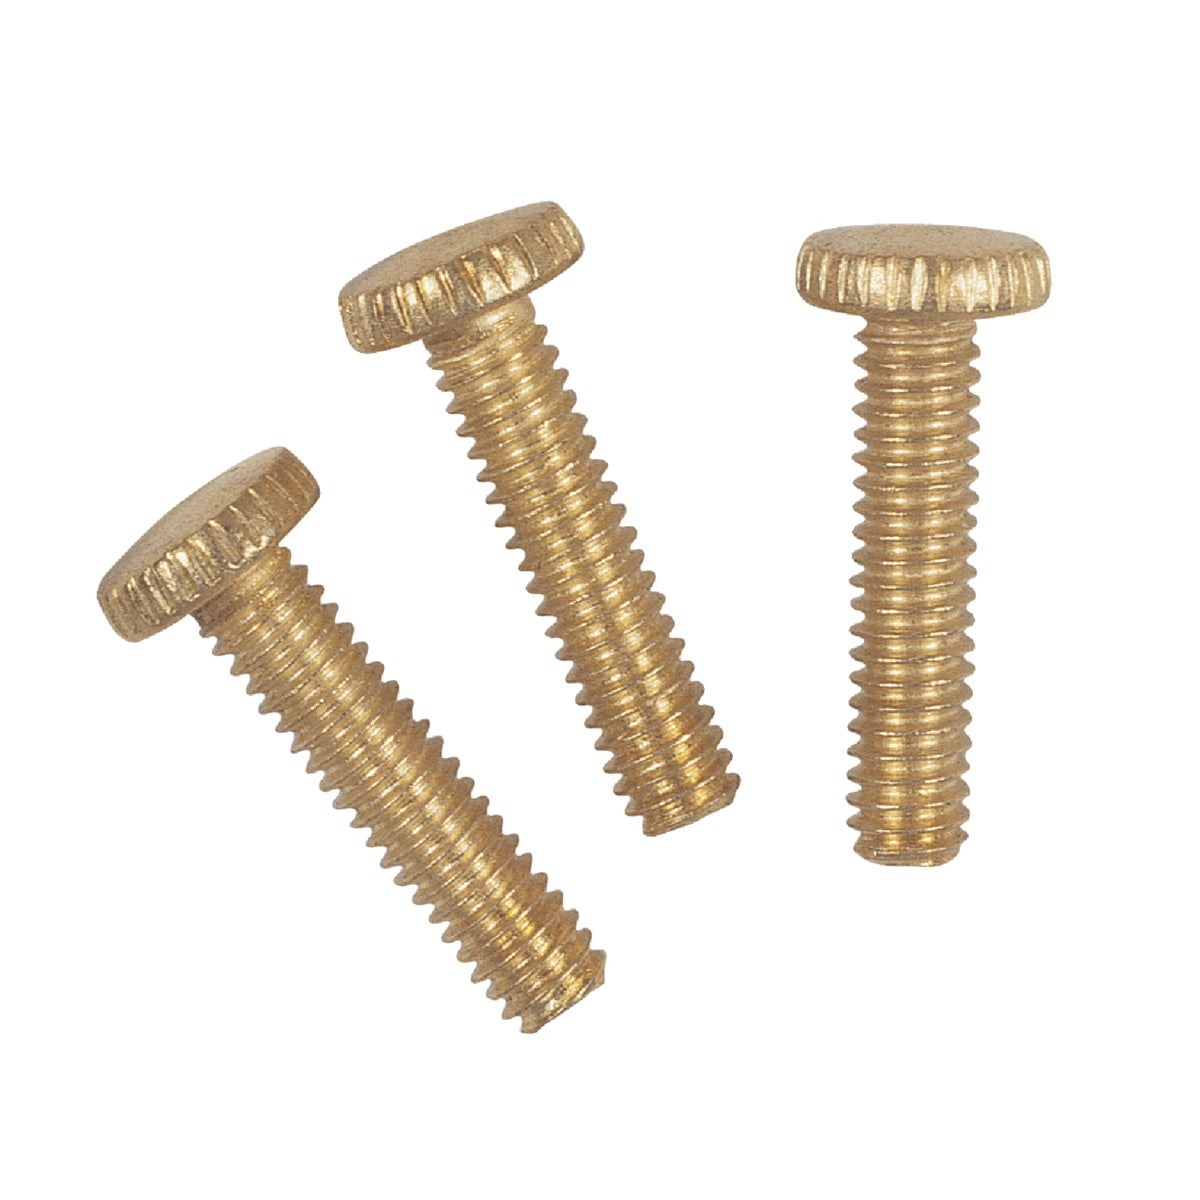 FIXTURE HOLDER SCREWS - 70634 by Westinghouse Lightng